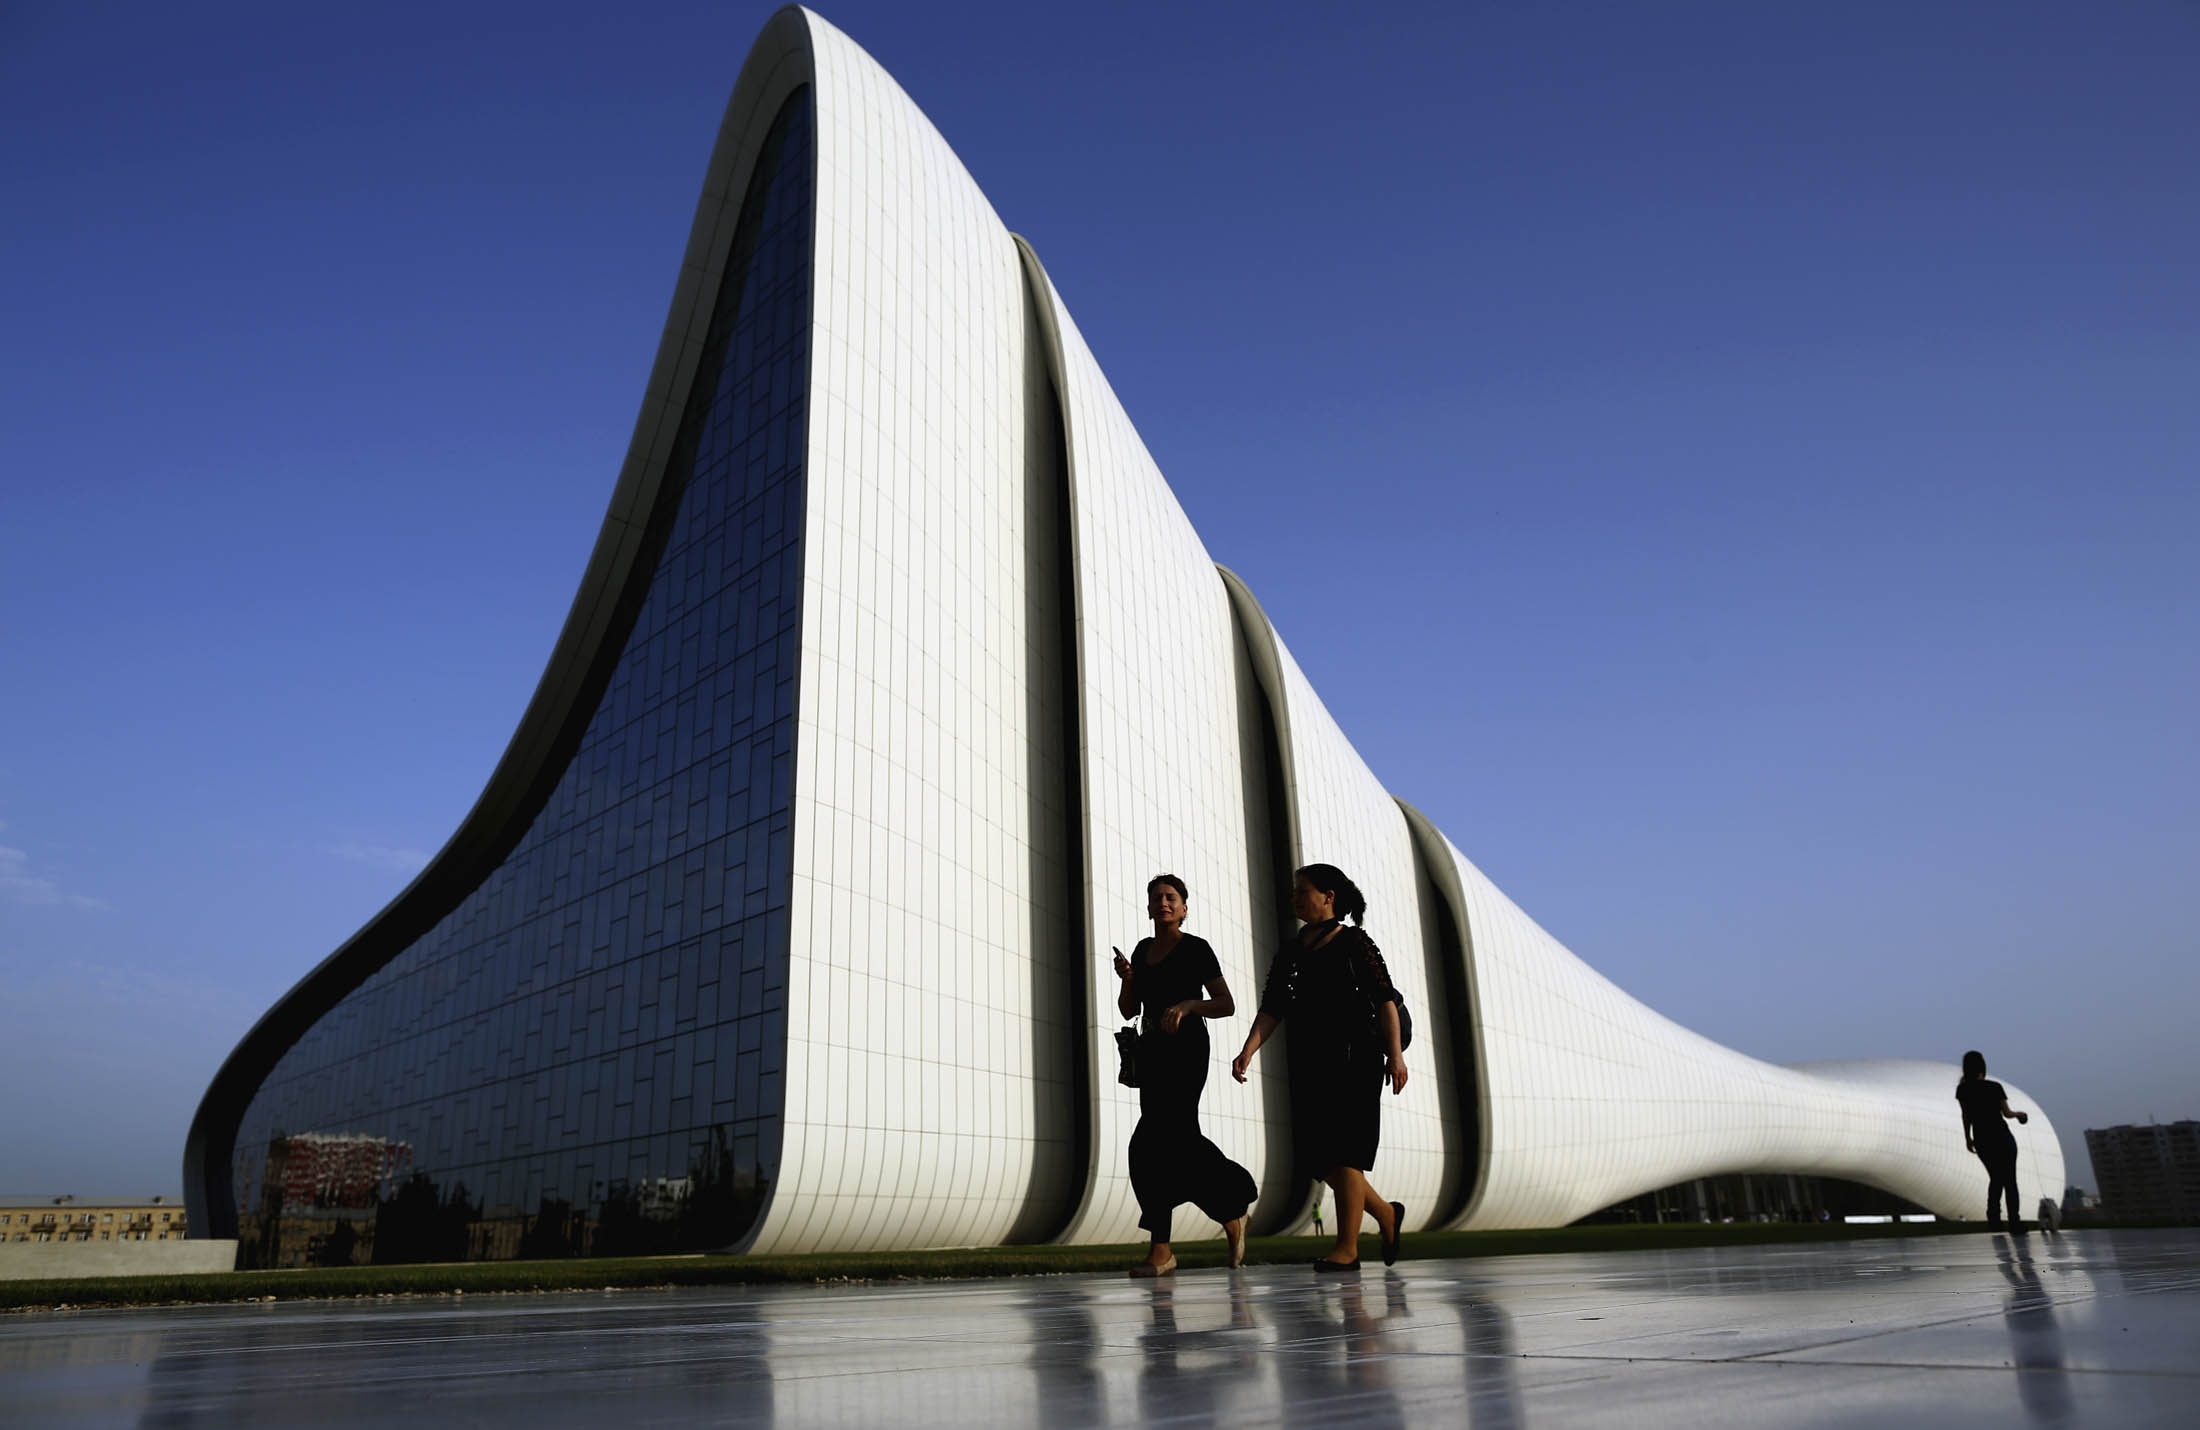 Zaha Hadid S Best Buildings Architect Dead At 65 Bloomberg